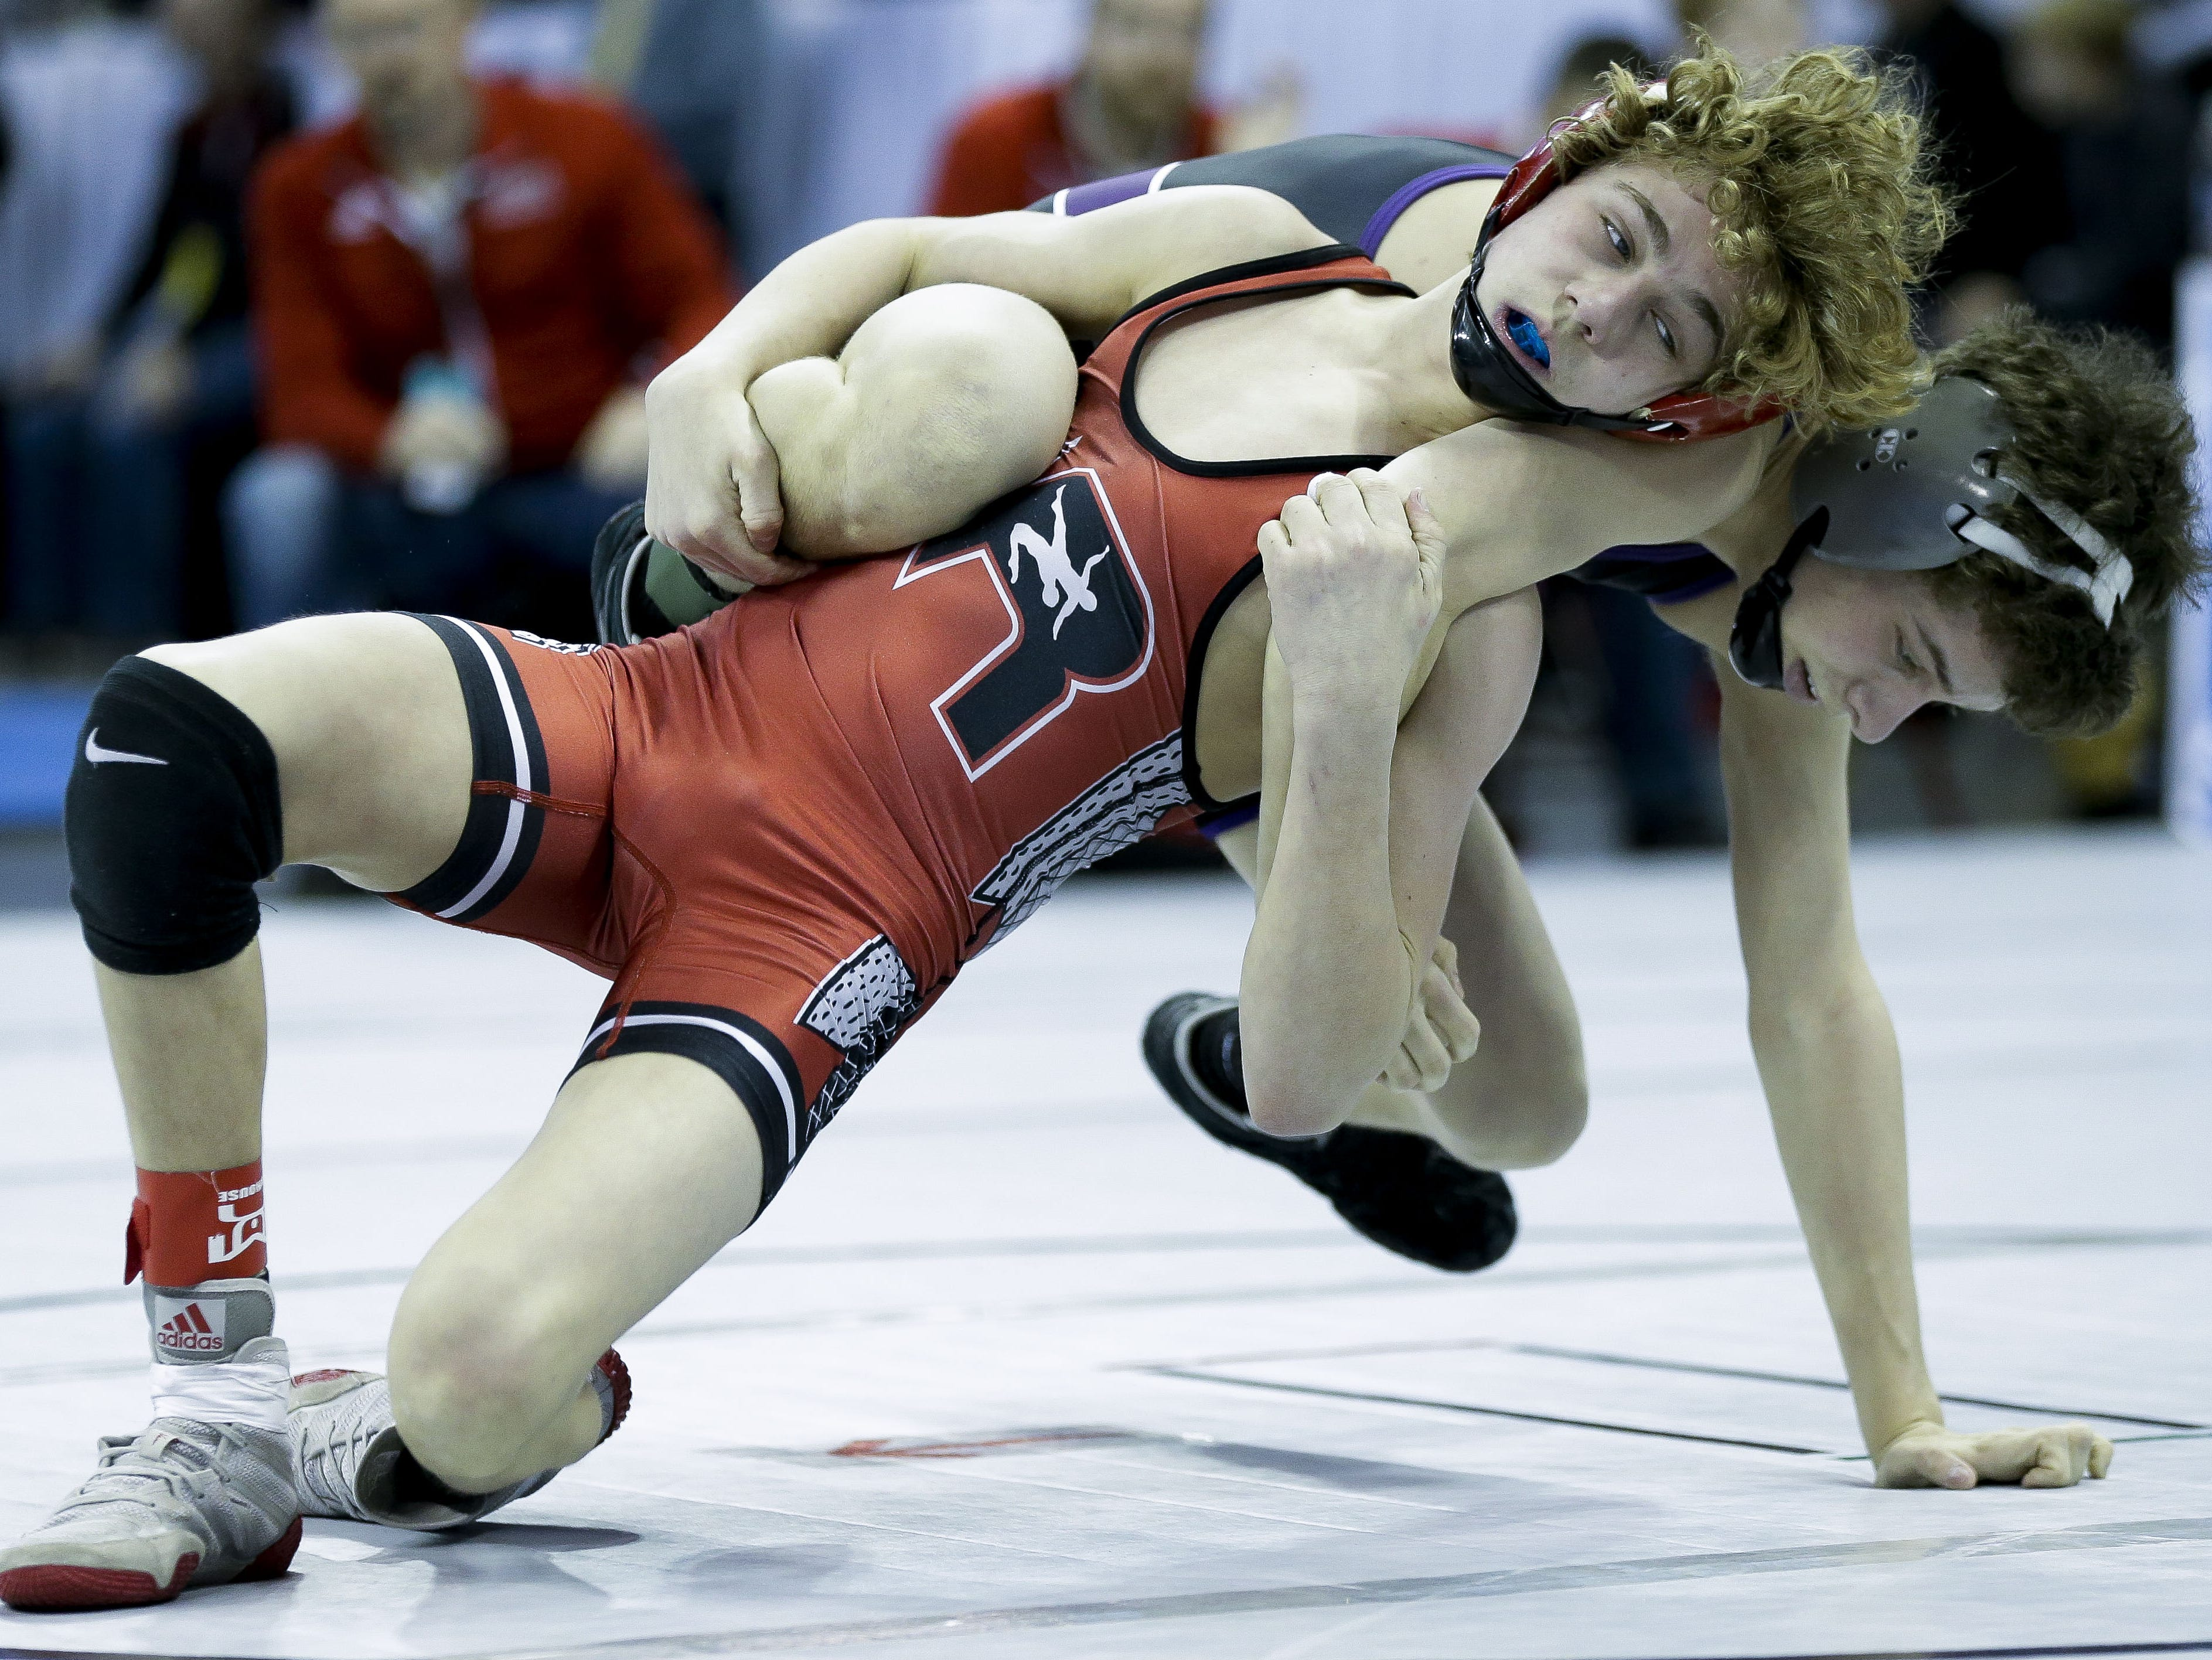 Wisconsin Rapids' Preston Spray wrestles against Waunakee's Kolby Heinz in a Division 1 106-pound preliminary match during the WIAA state wrestling tournament on Thursday, February 21, 2019, at the Kohl Center in Madison, Wis. Tork Mason/USA TODAY NETWORK-Wisconsin